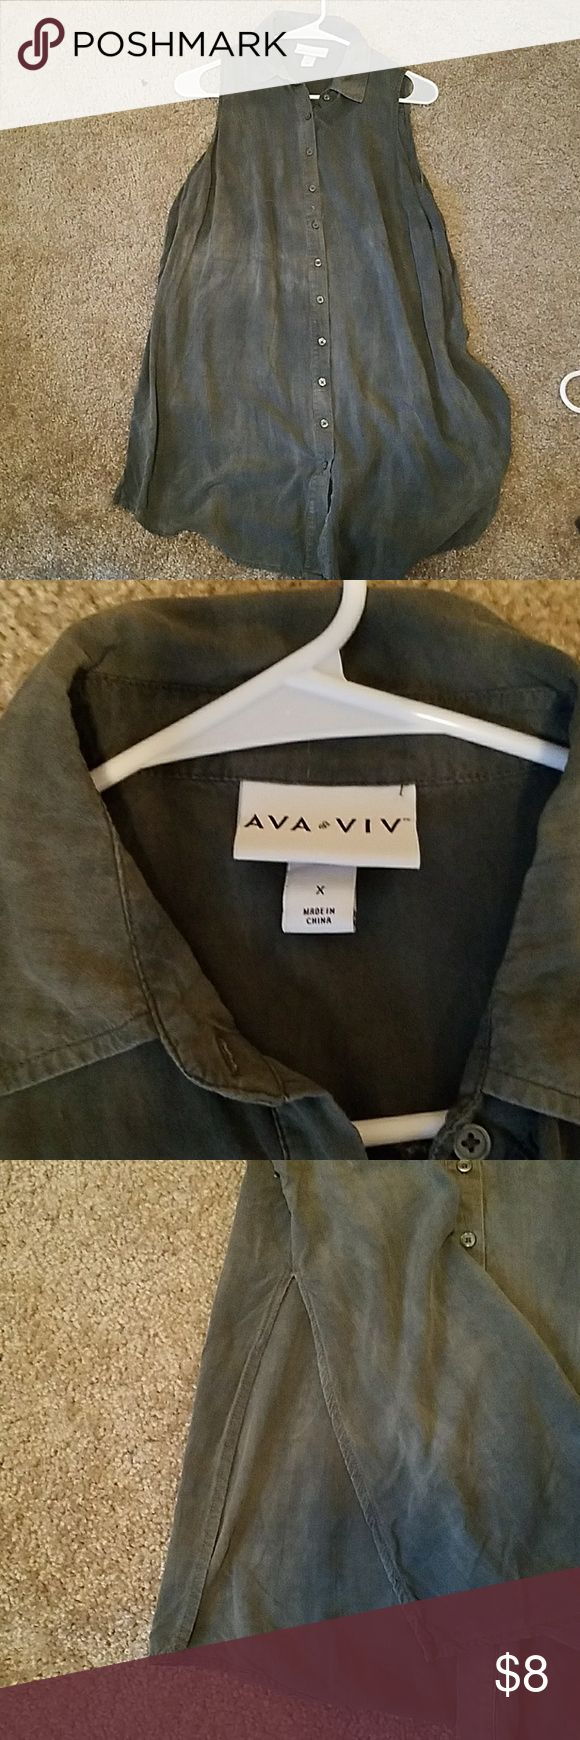 AVA & VIV dark green button down tank Has an acid wash look. Button down with collar. Hits about mid thigh, slits in side go up to waist. Super cute for a longer layer under a sweater! Size X. Fit like a womens med. Ava & Viv Tops